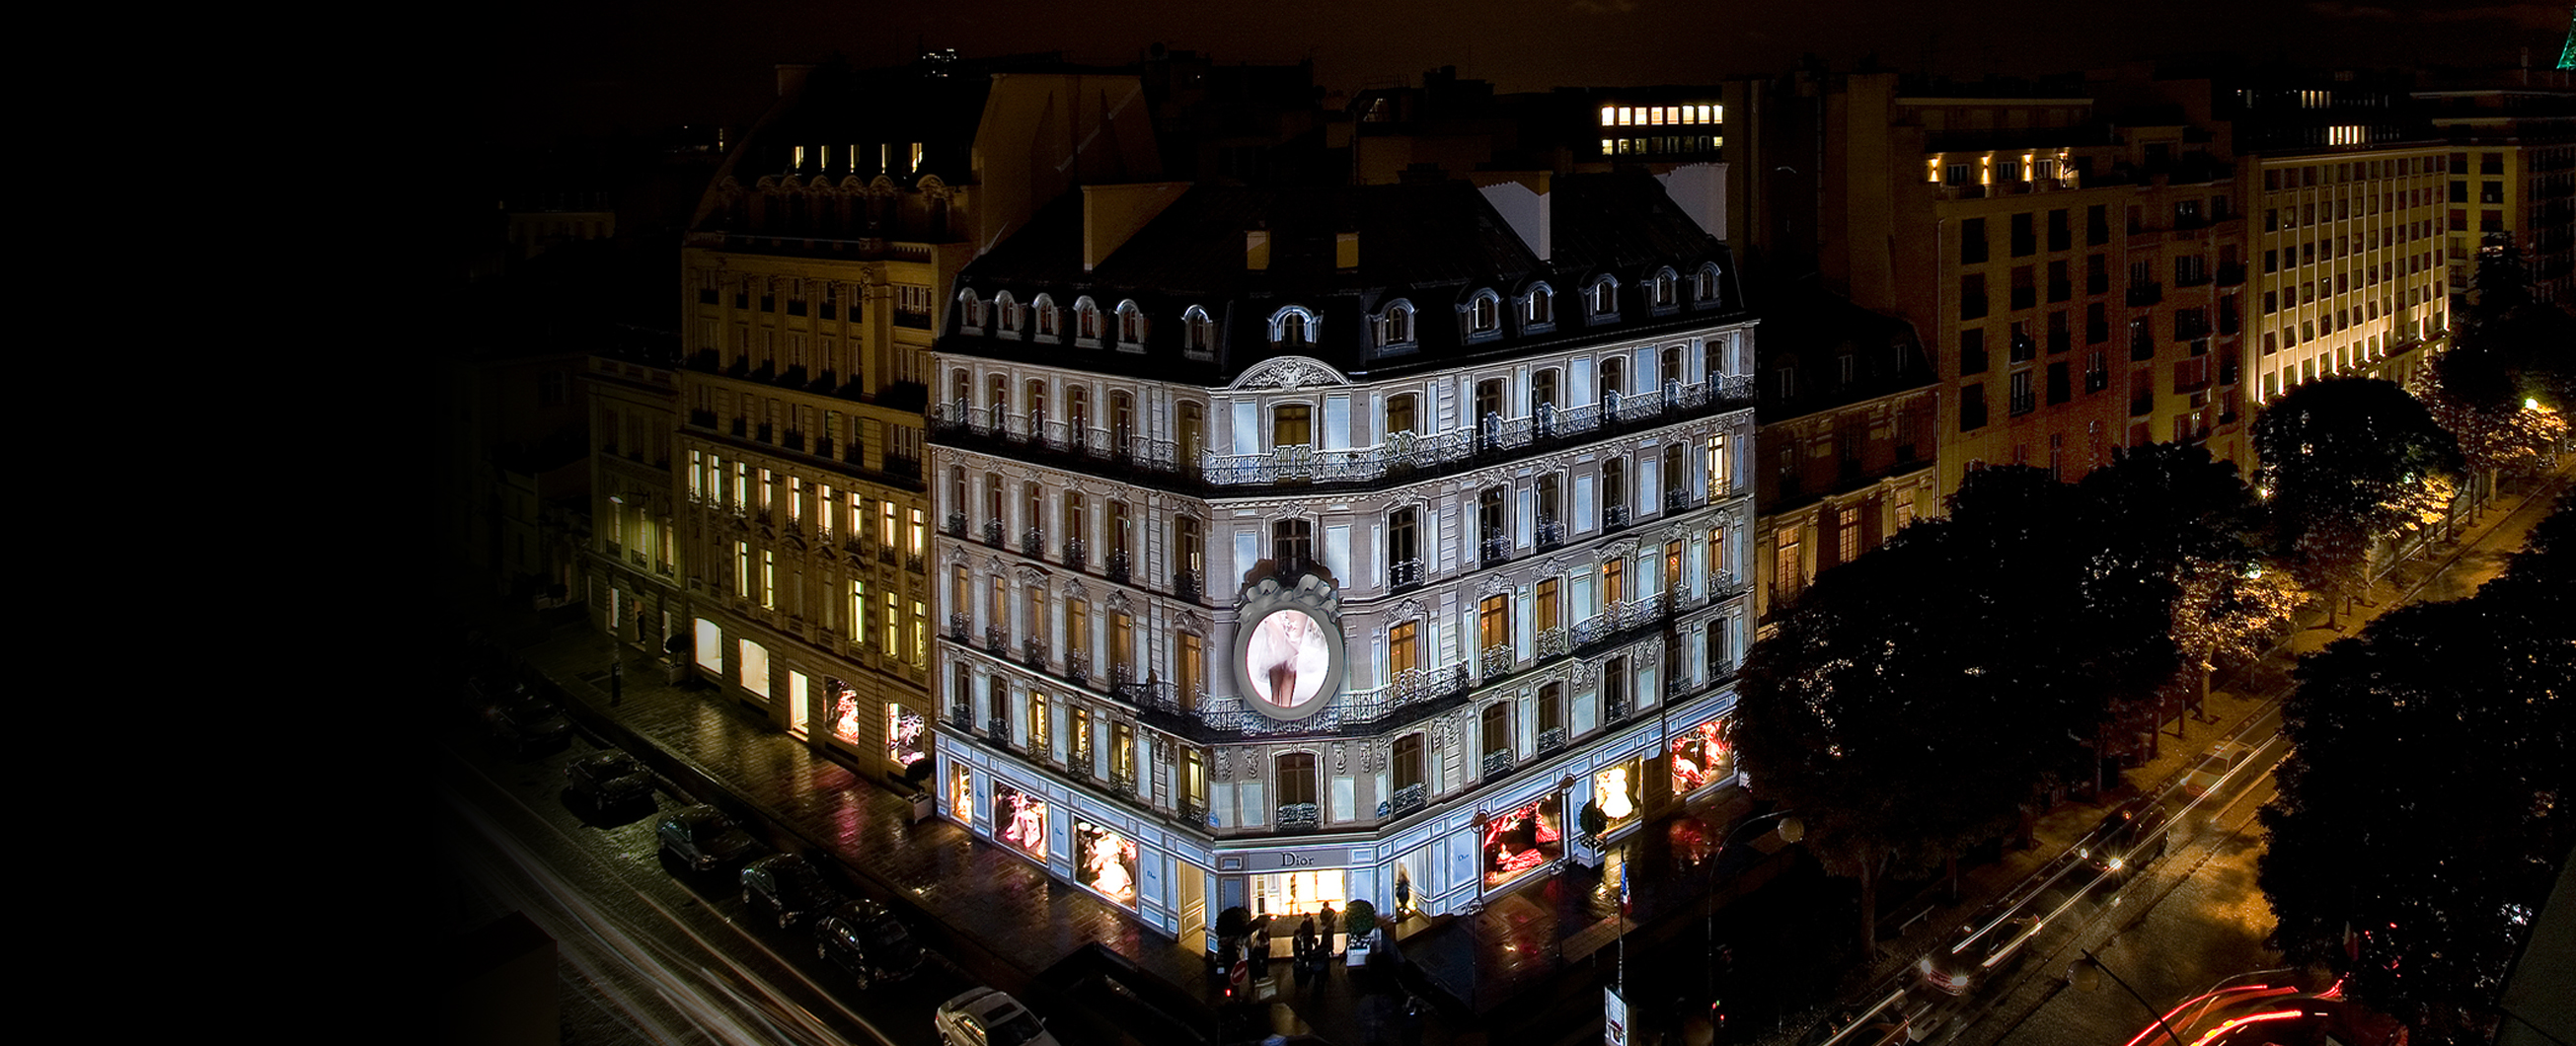 DIOR-30-avenue-montaigne-paris